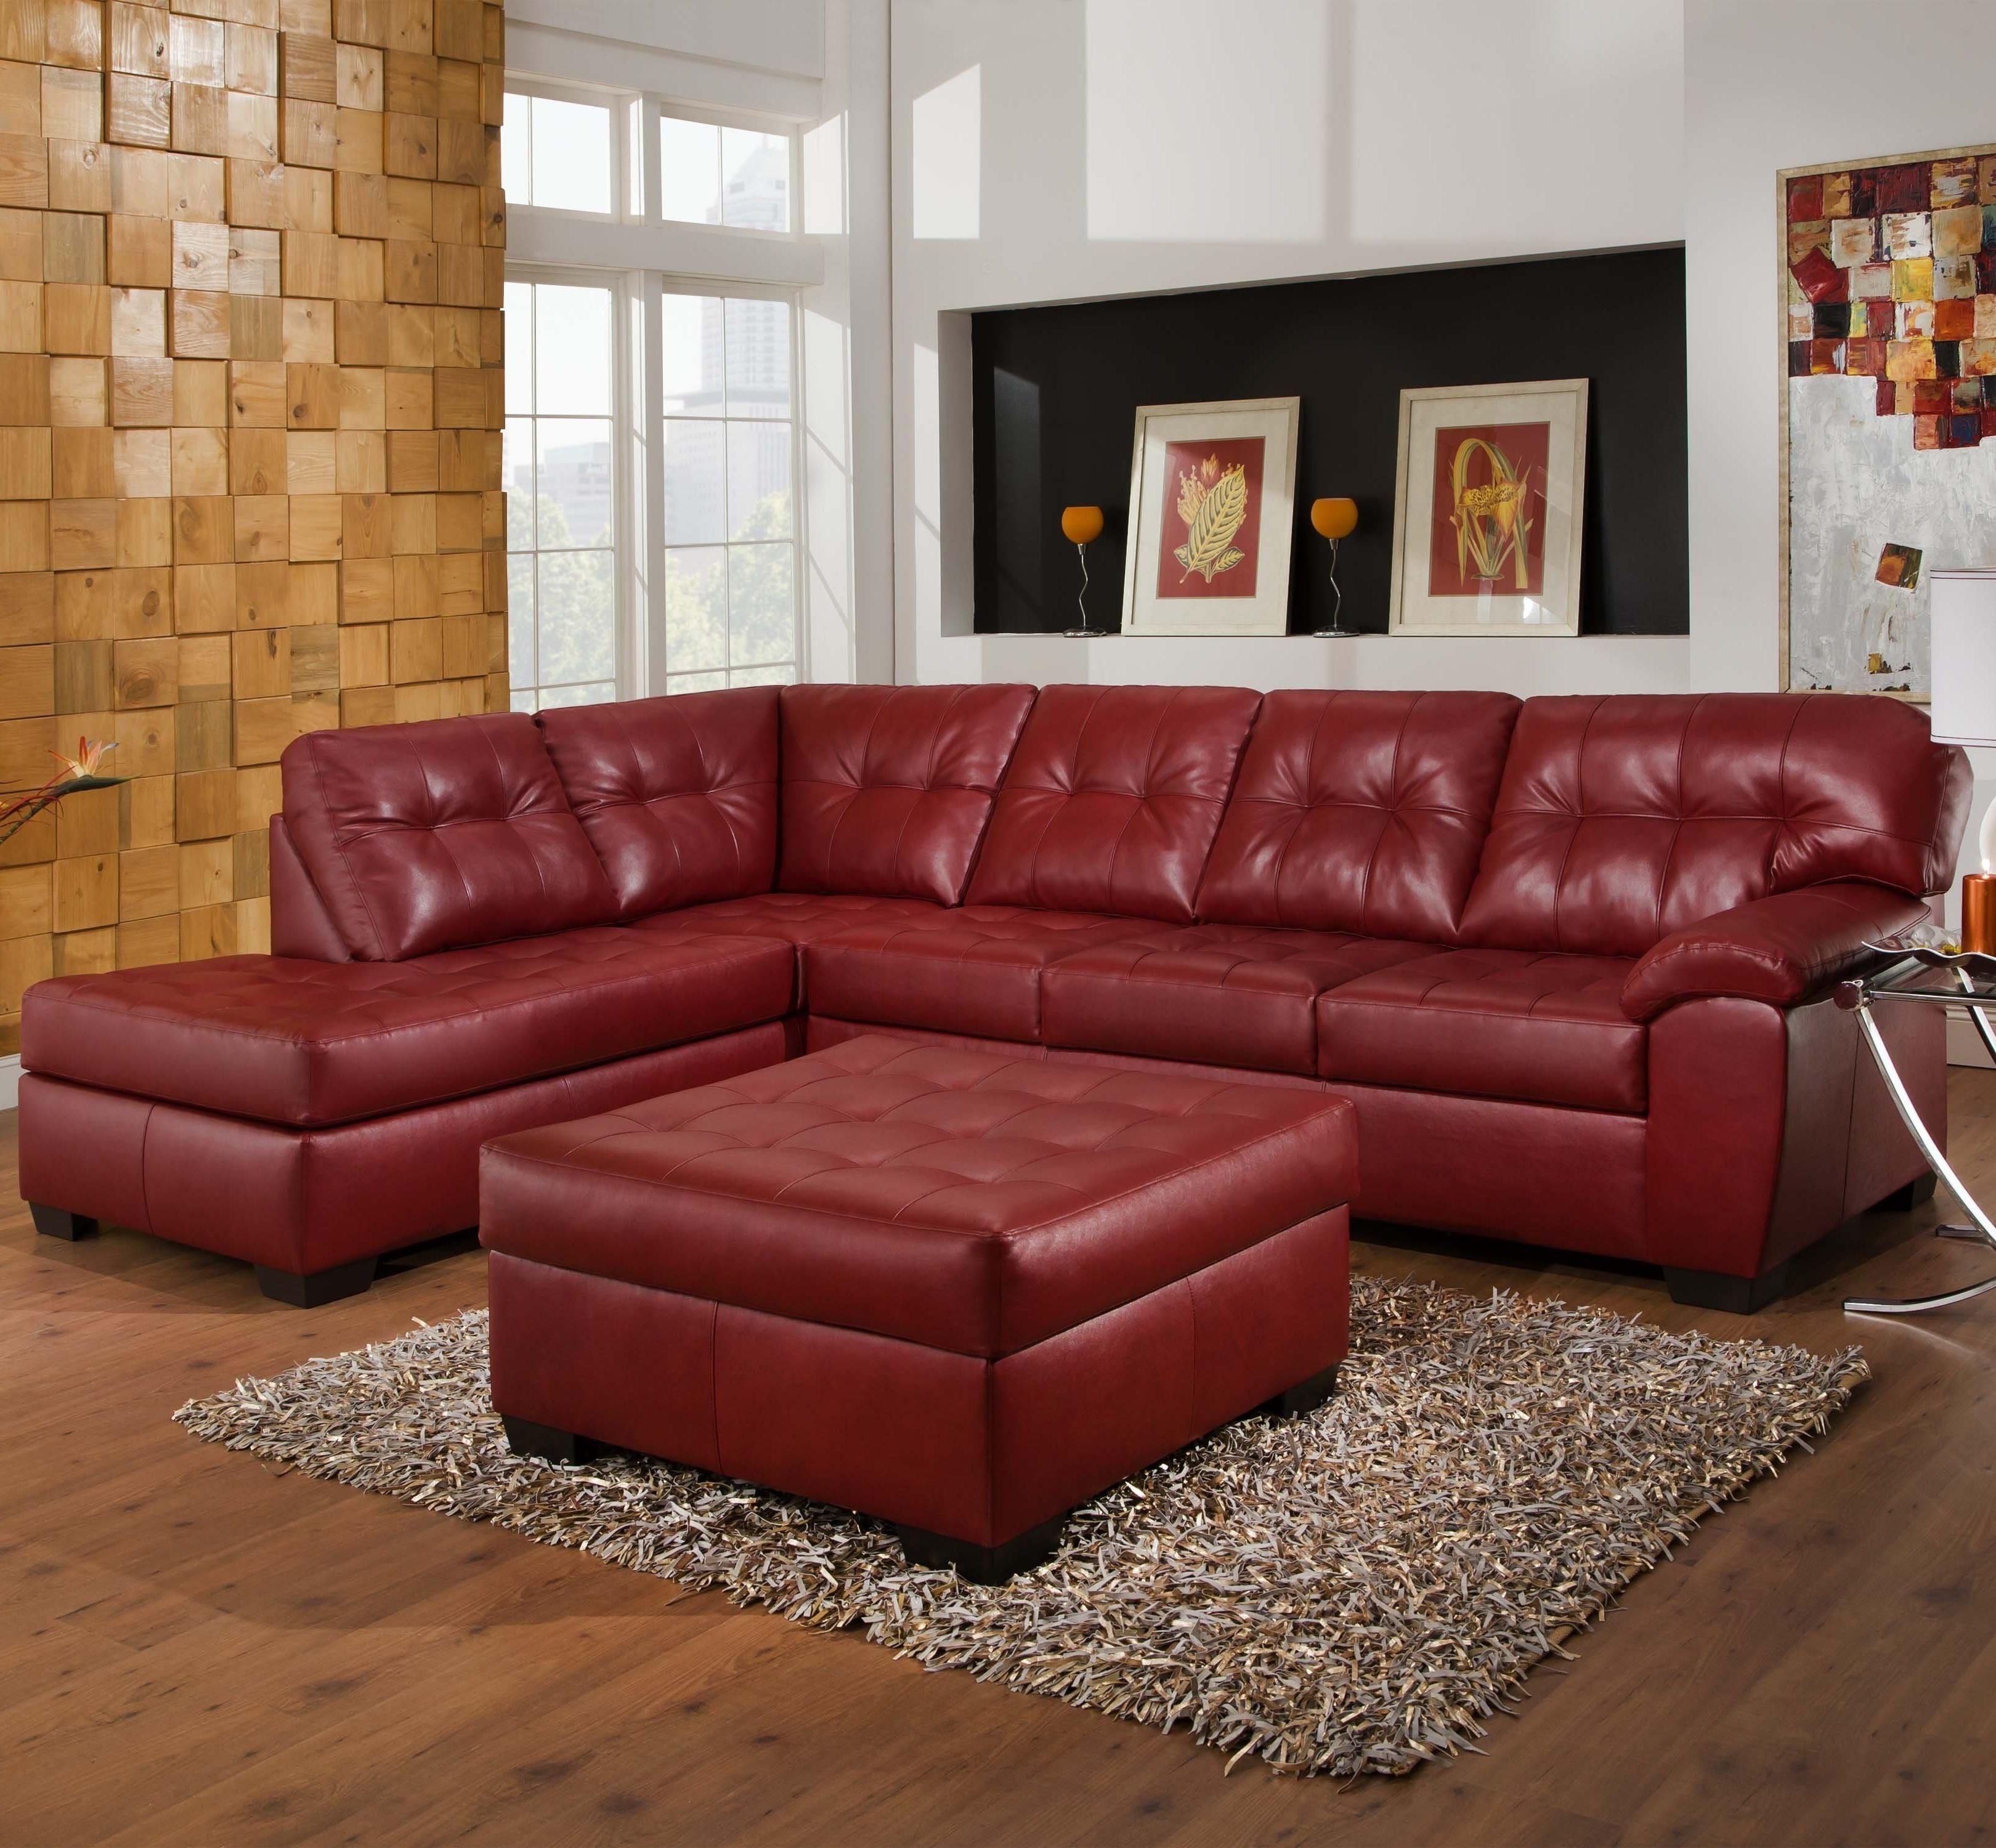 Most Up To Date Memphis Sectional Sofas Within 9569 2 Piece Sectional With Tufted Seats & Backsimmons (View 3 of 15)